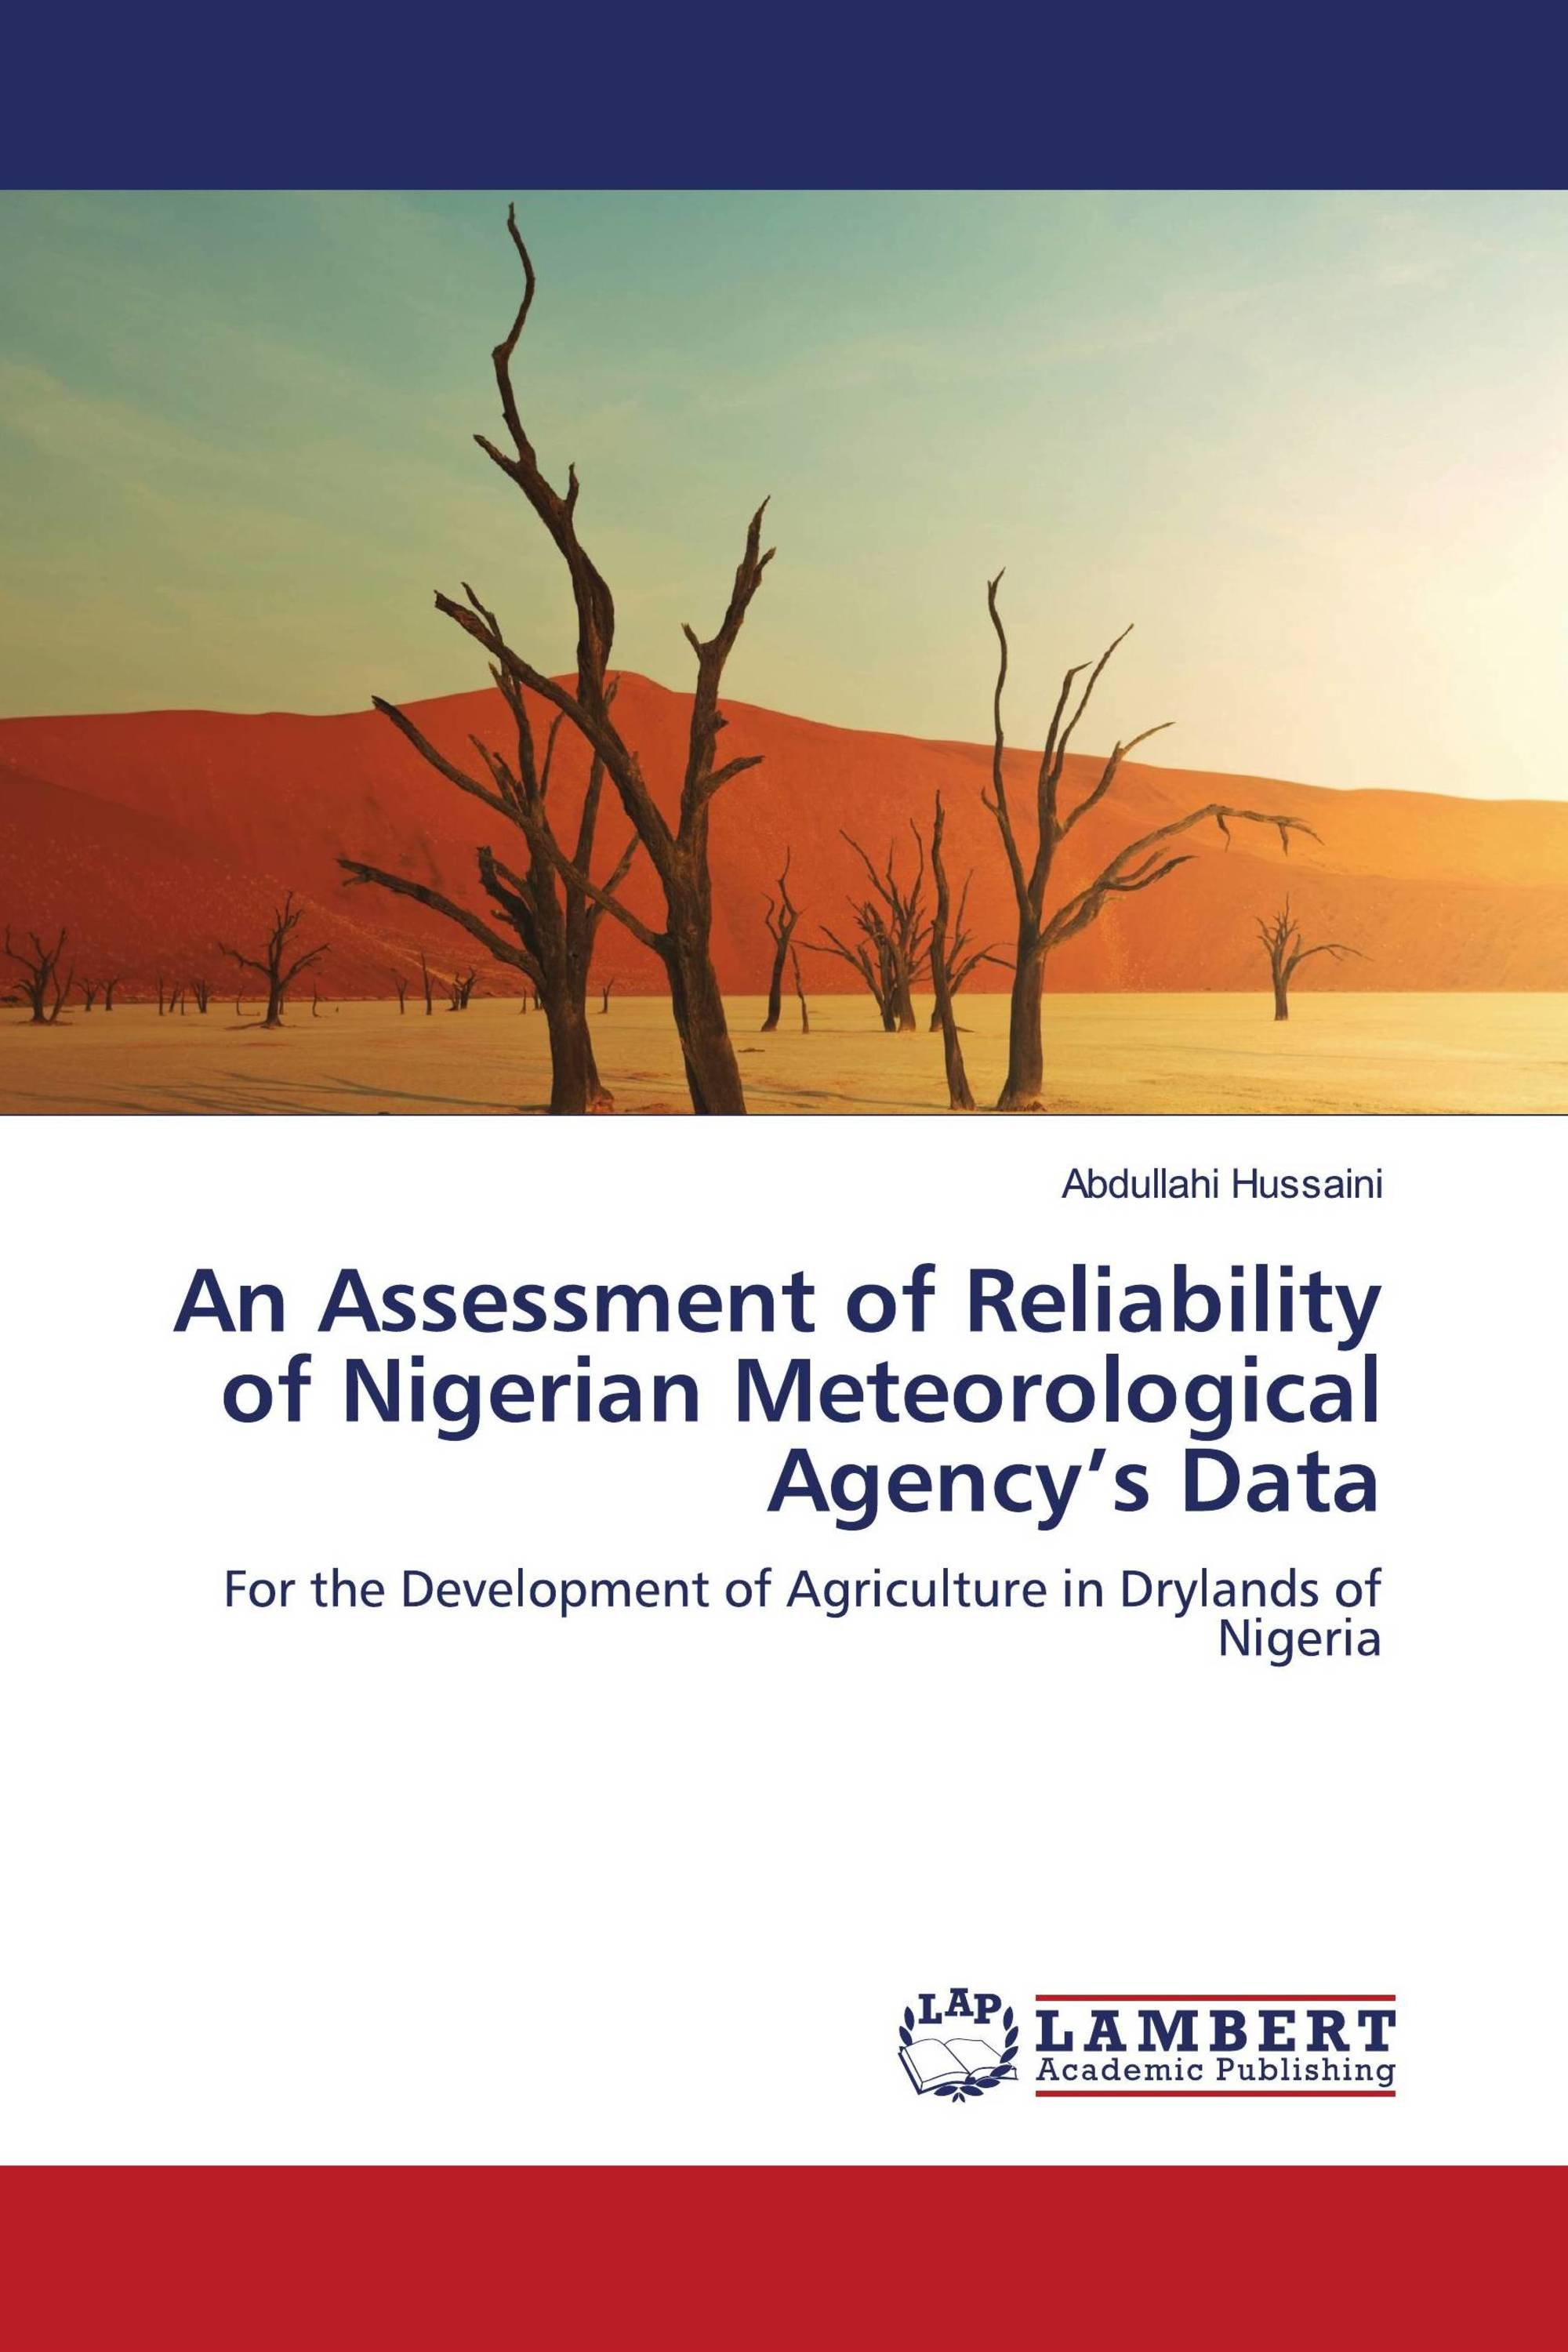 An Assessment of Reliability of Nigerian Meteorological Agency's Data